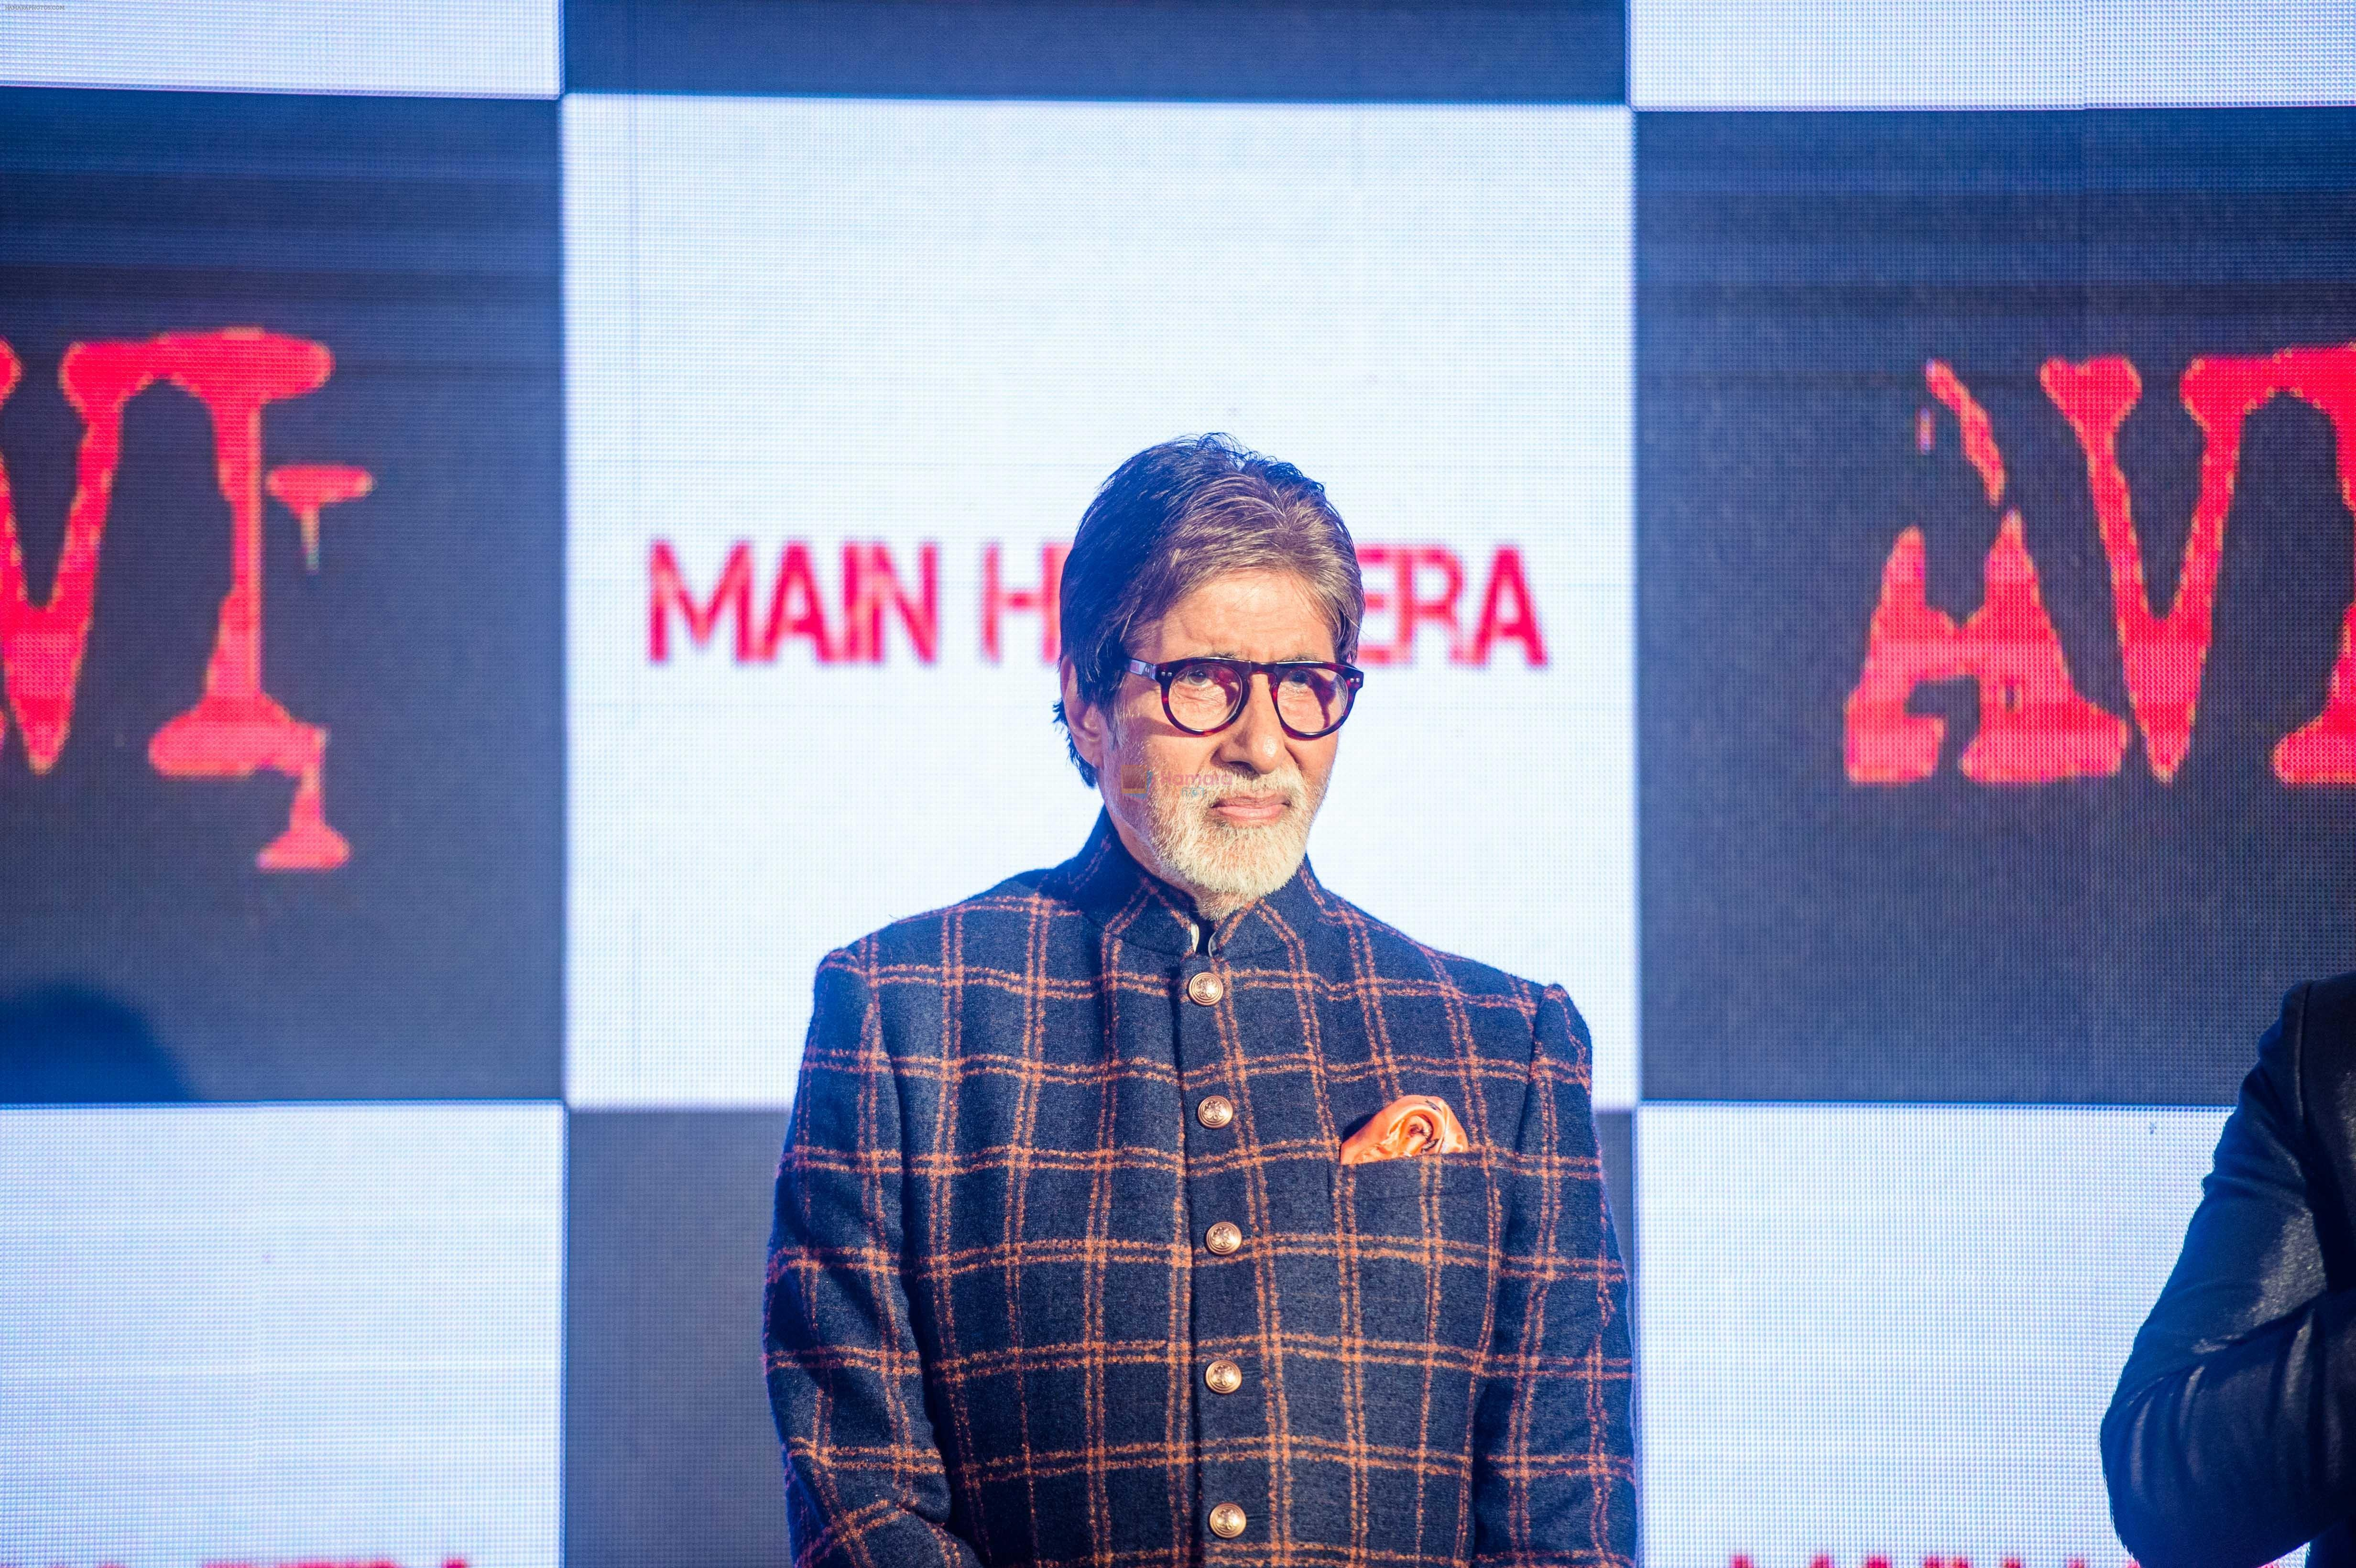 Amitabh Bachchan launches Avitesh Srivastava's song _Main Hua Tera_ in Marriot Courtyard, andheri on 19th Nov 2018